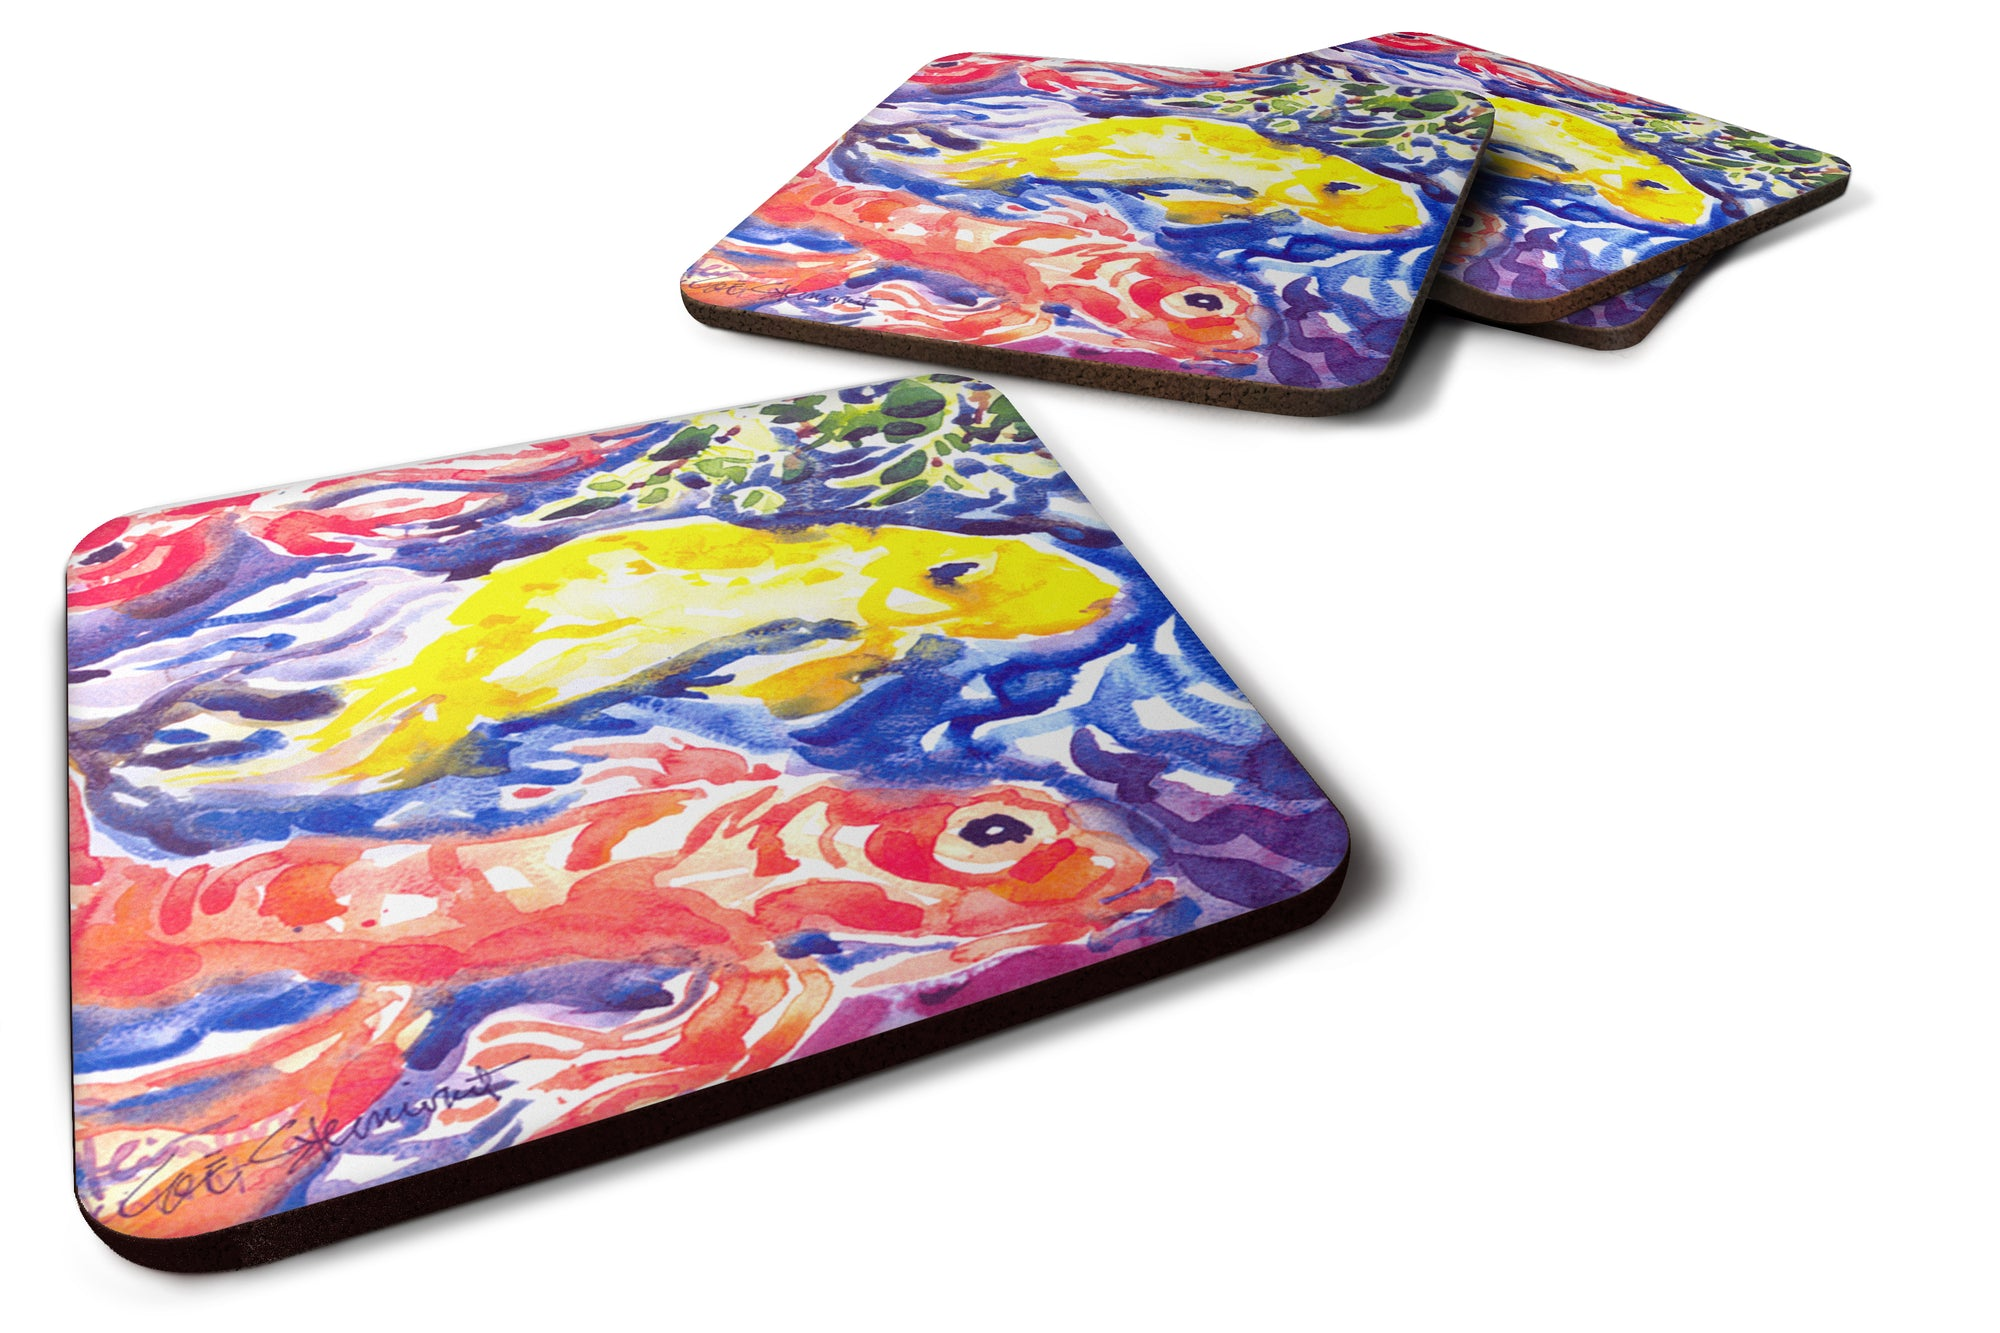 Buy this Set of 4 Fish - Koi in the pond Foam Coasters